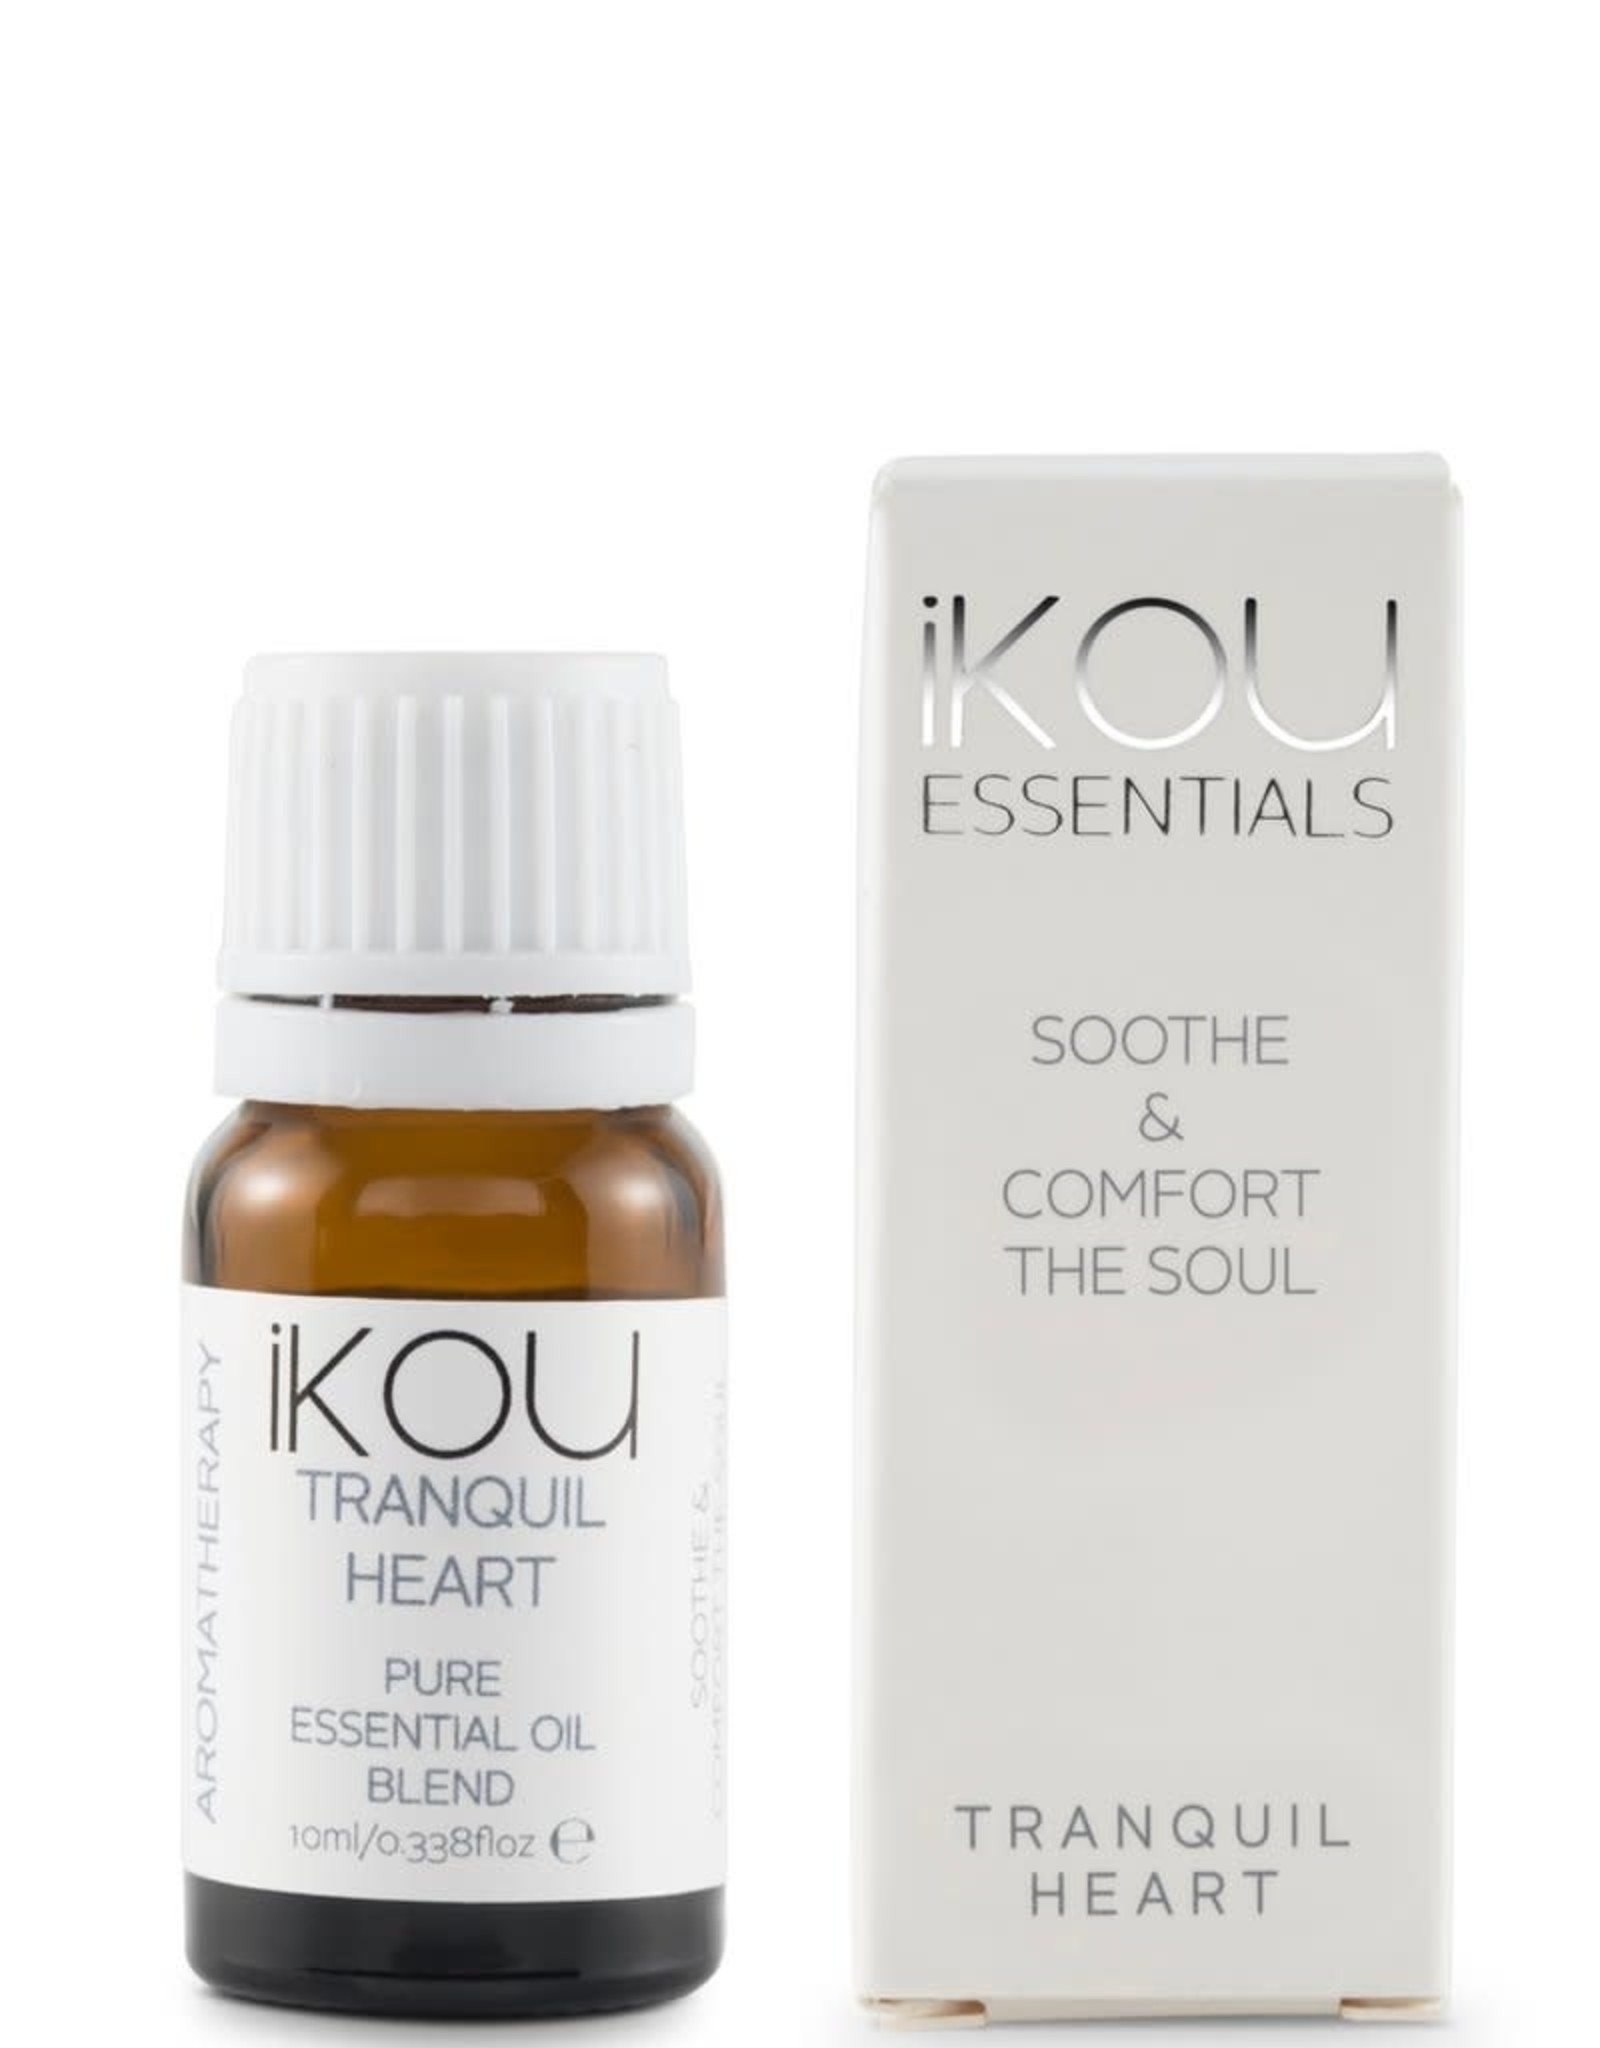 IKOU TRANQUIL HEART Essential Oils